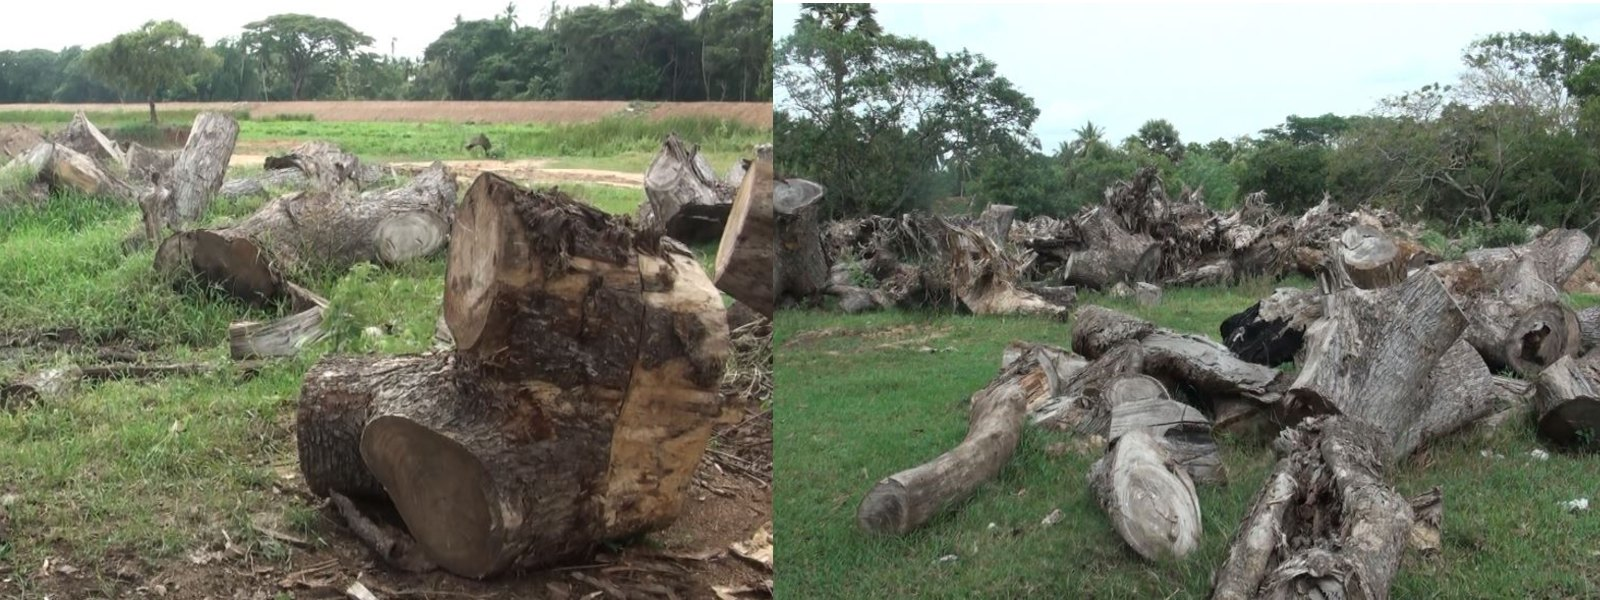 100 year old tree cut down under the guise of renovating agrarian tank in A'pura